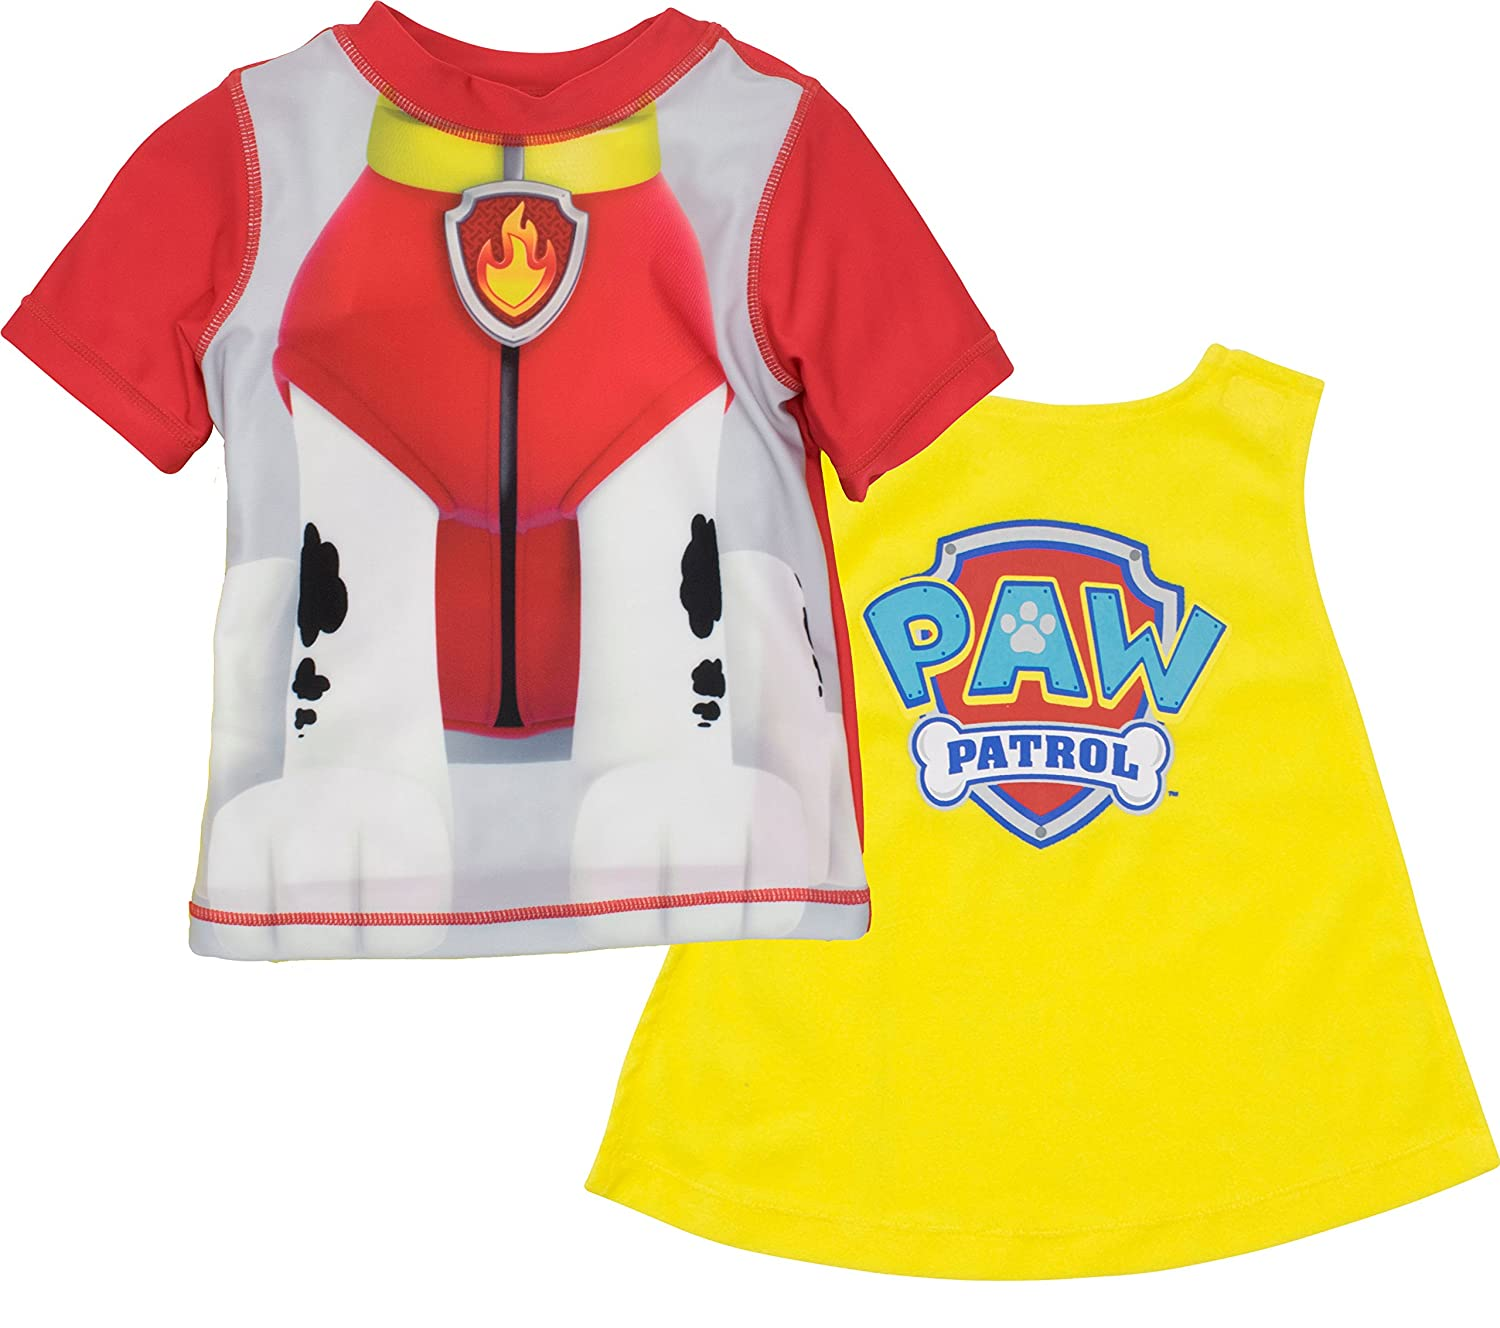 Nickelodeon Paw Patrol Boys' Swim Rash Guard & Caped Towel Set - Marshall, Chase